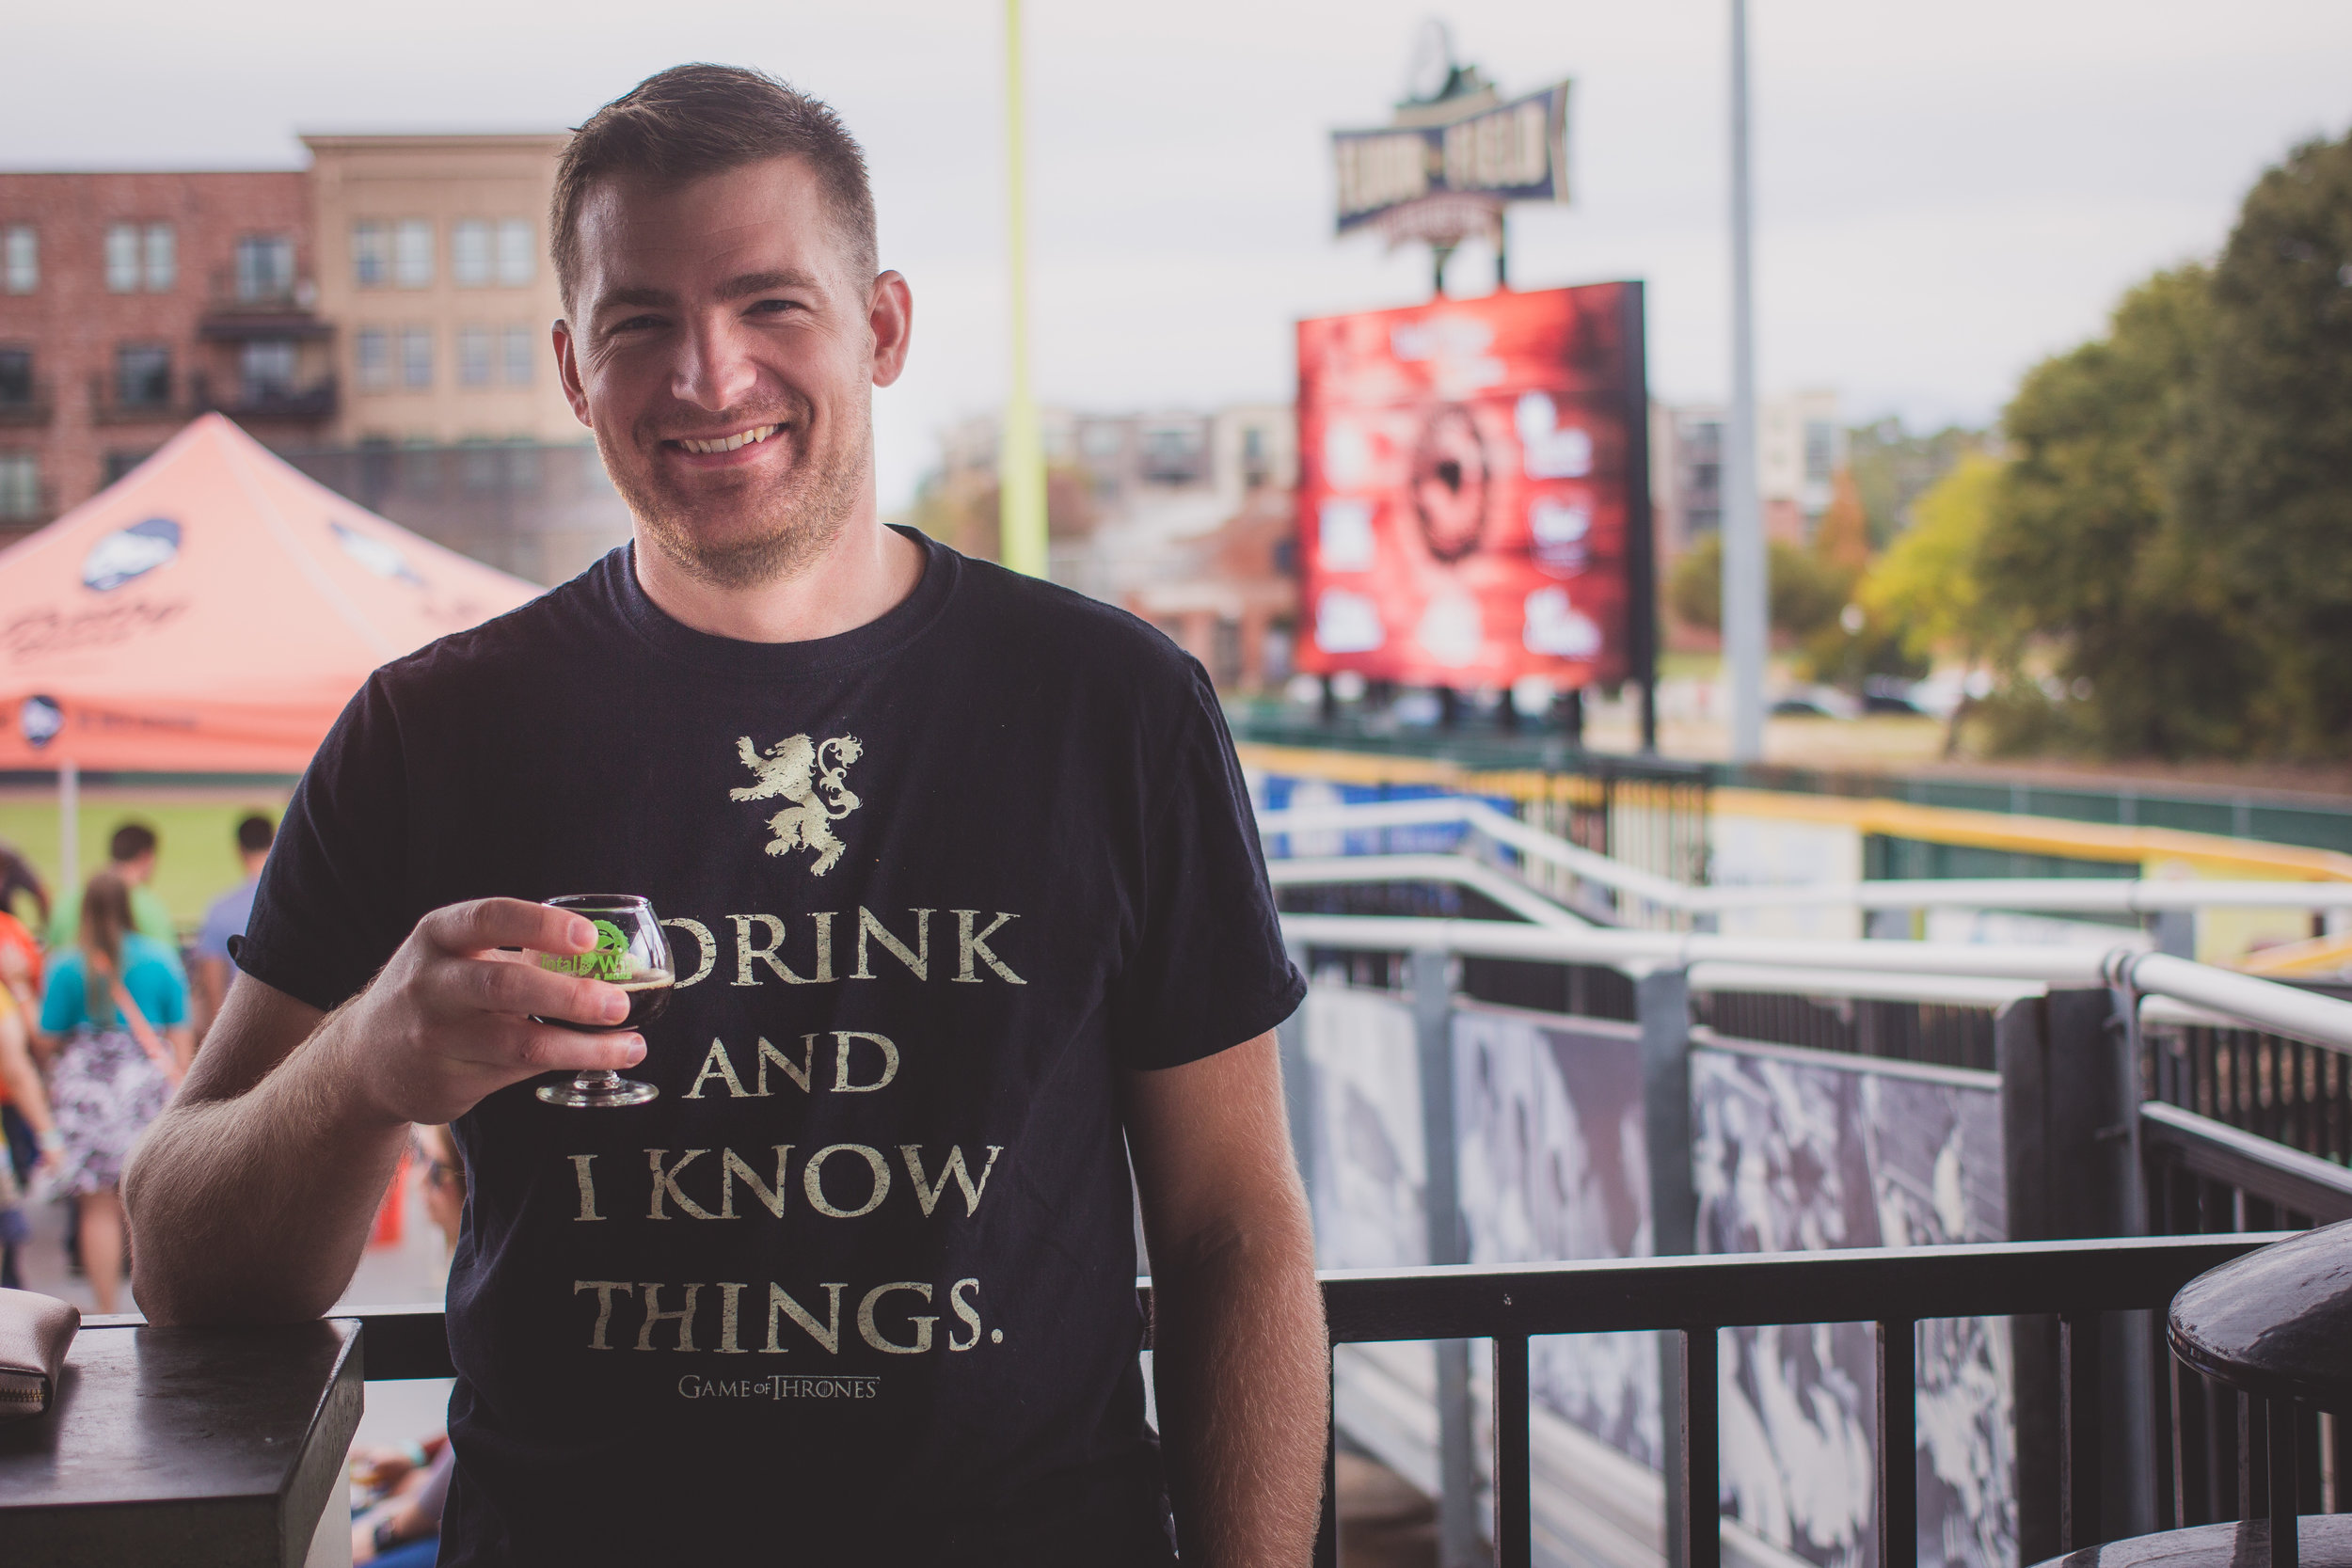 I_drink_and_I_know_things